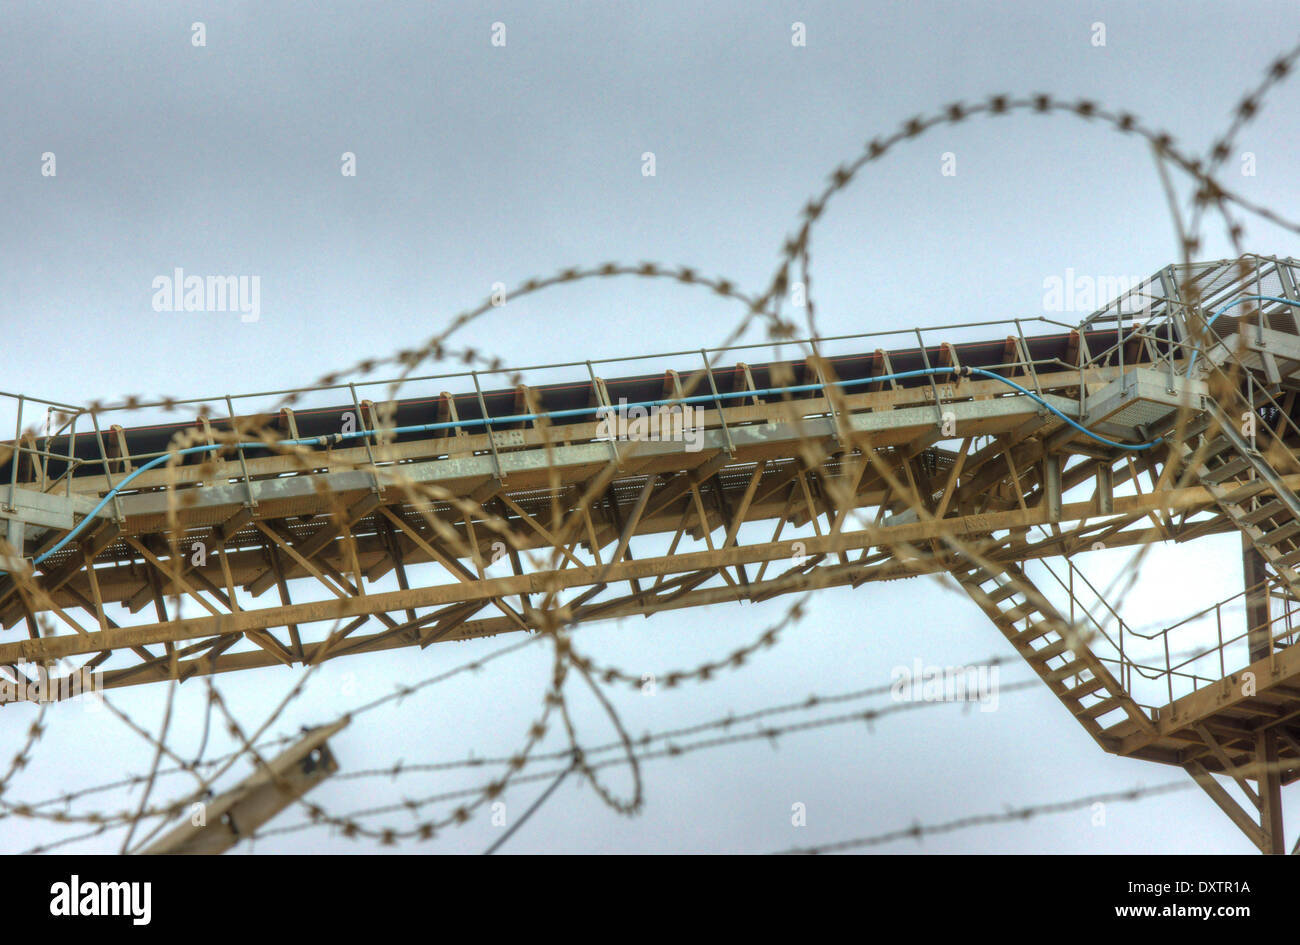 industrial conveyor belt  industrial machinery,  barbed wire - Stock Image